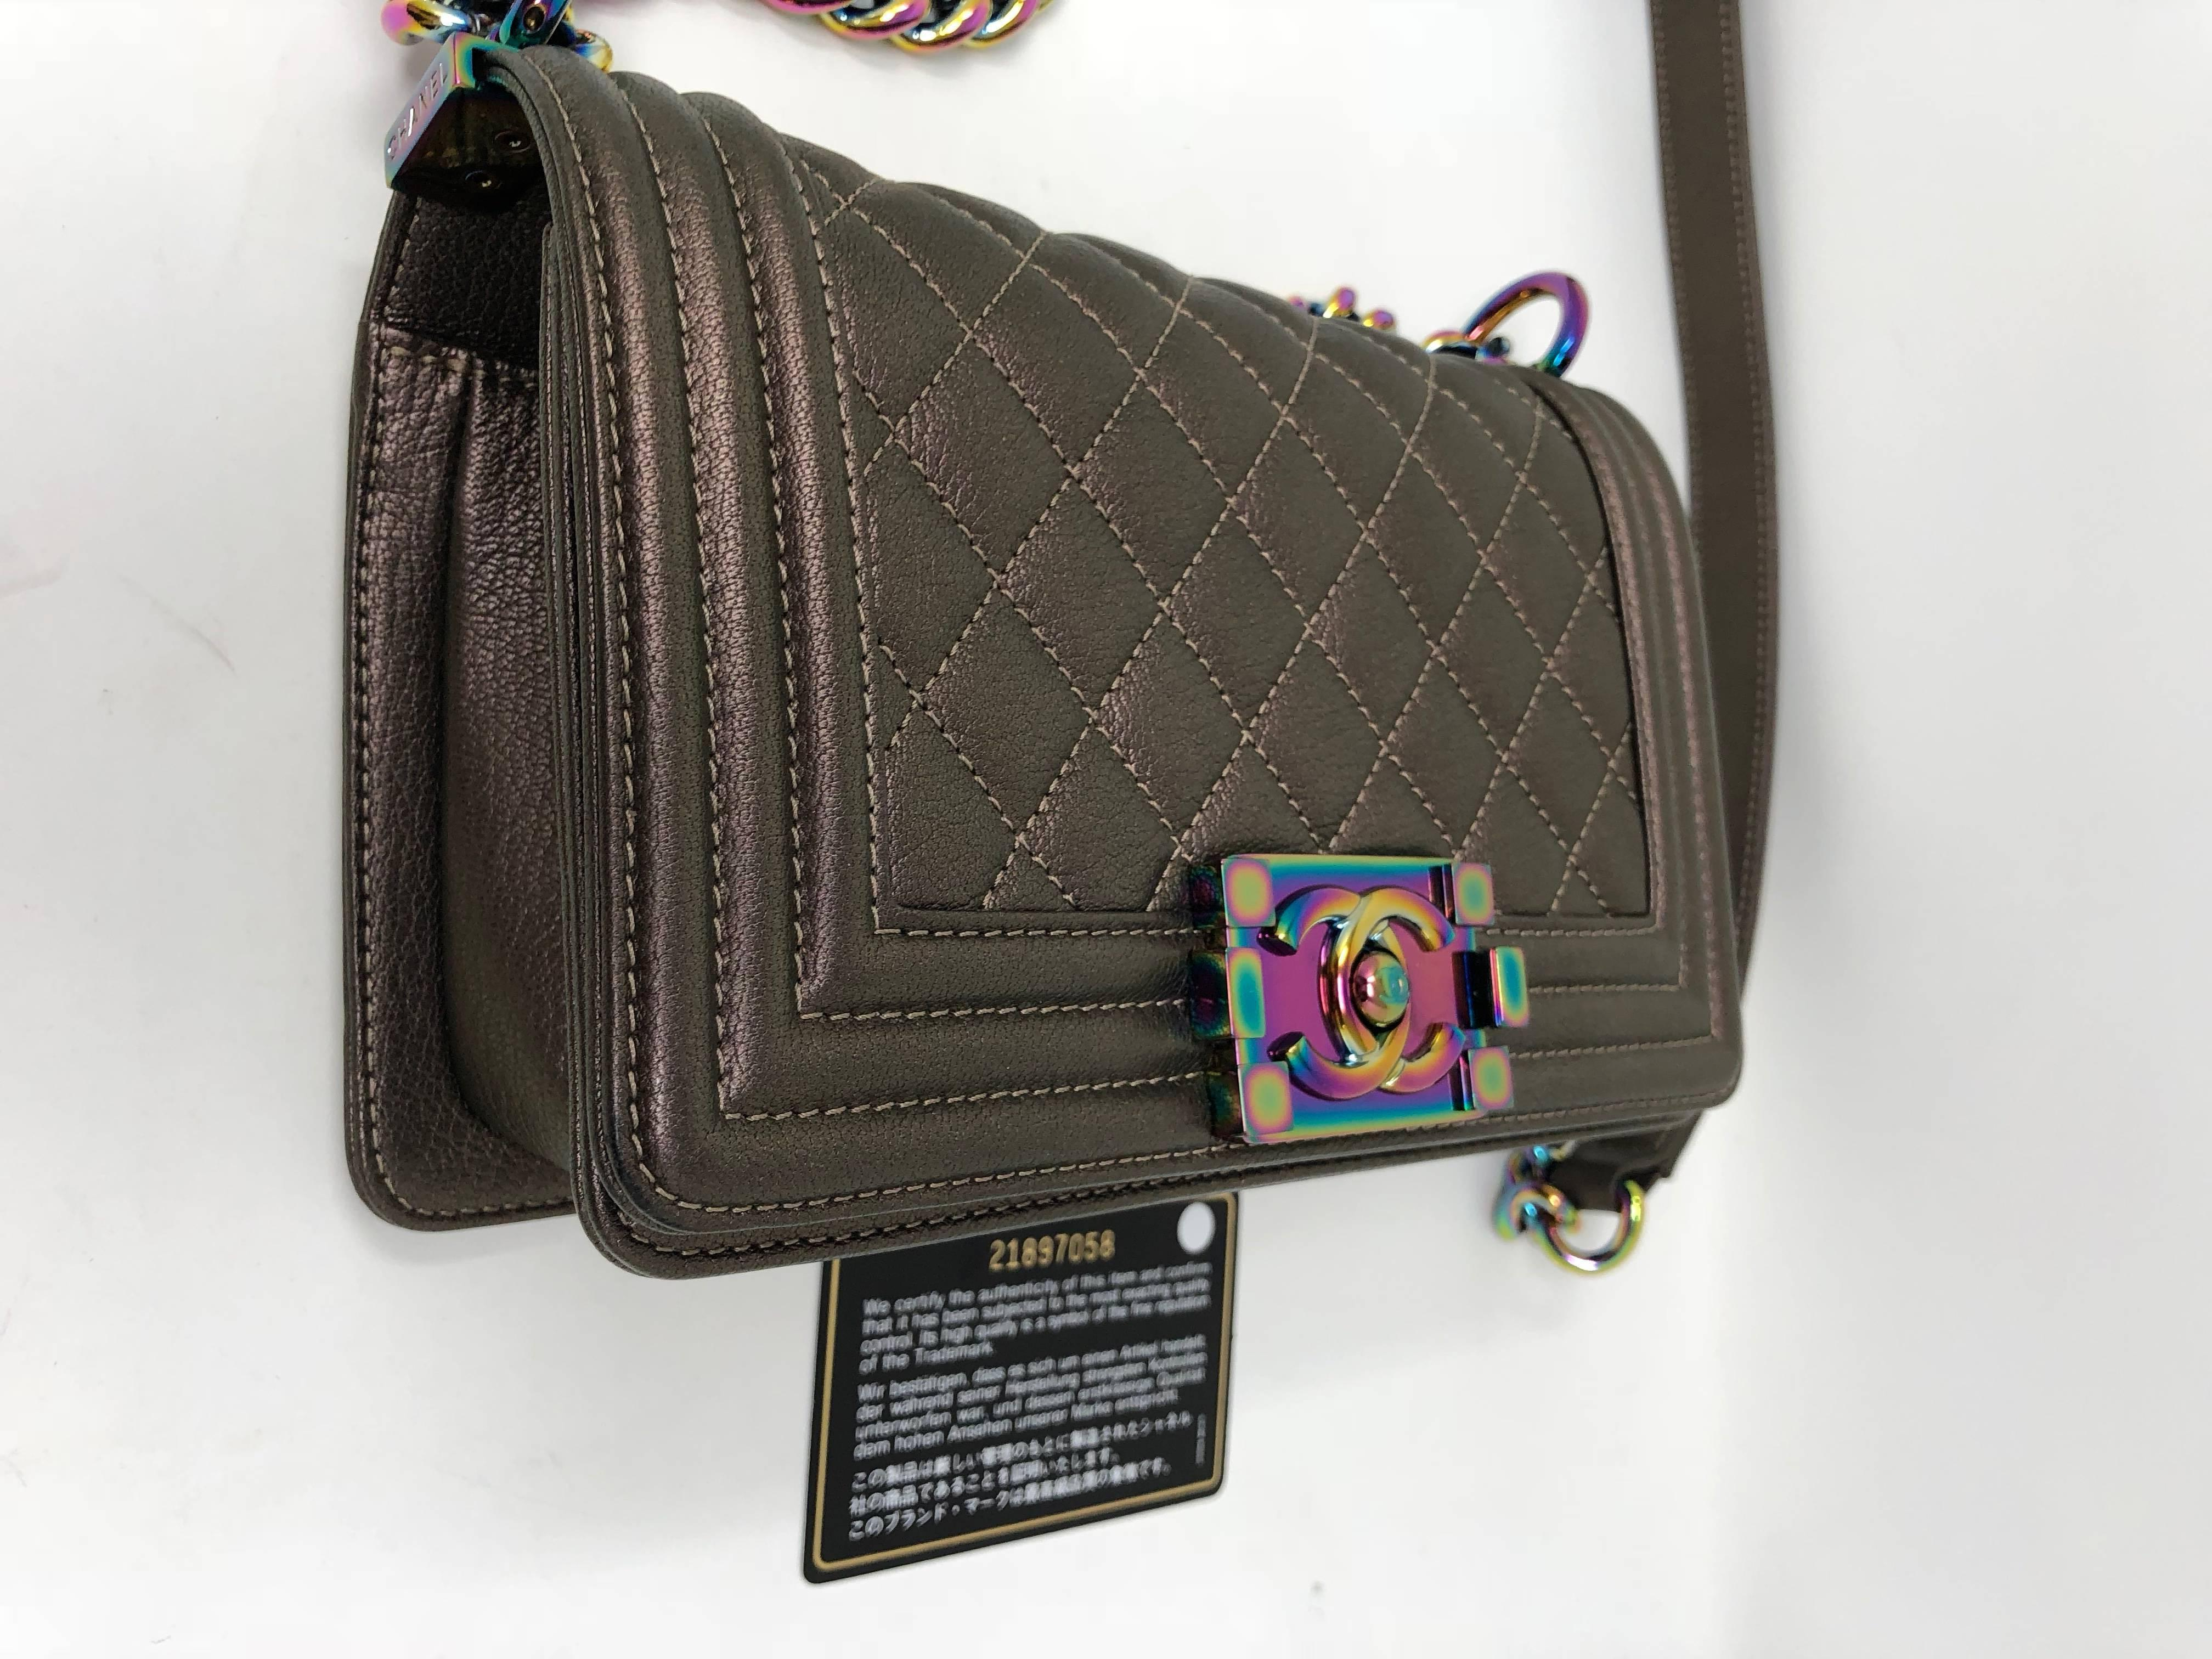 39c15ed81f29 Chanel Mermaid Le Boy Bag at 1stdibs